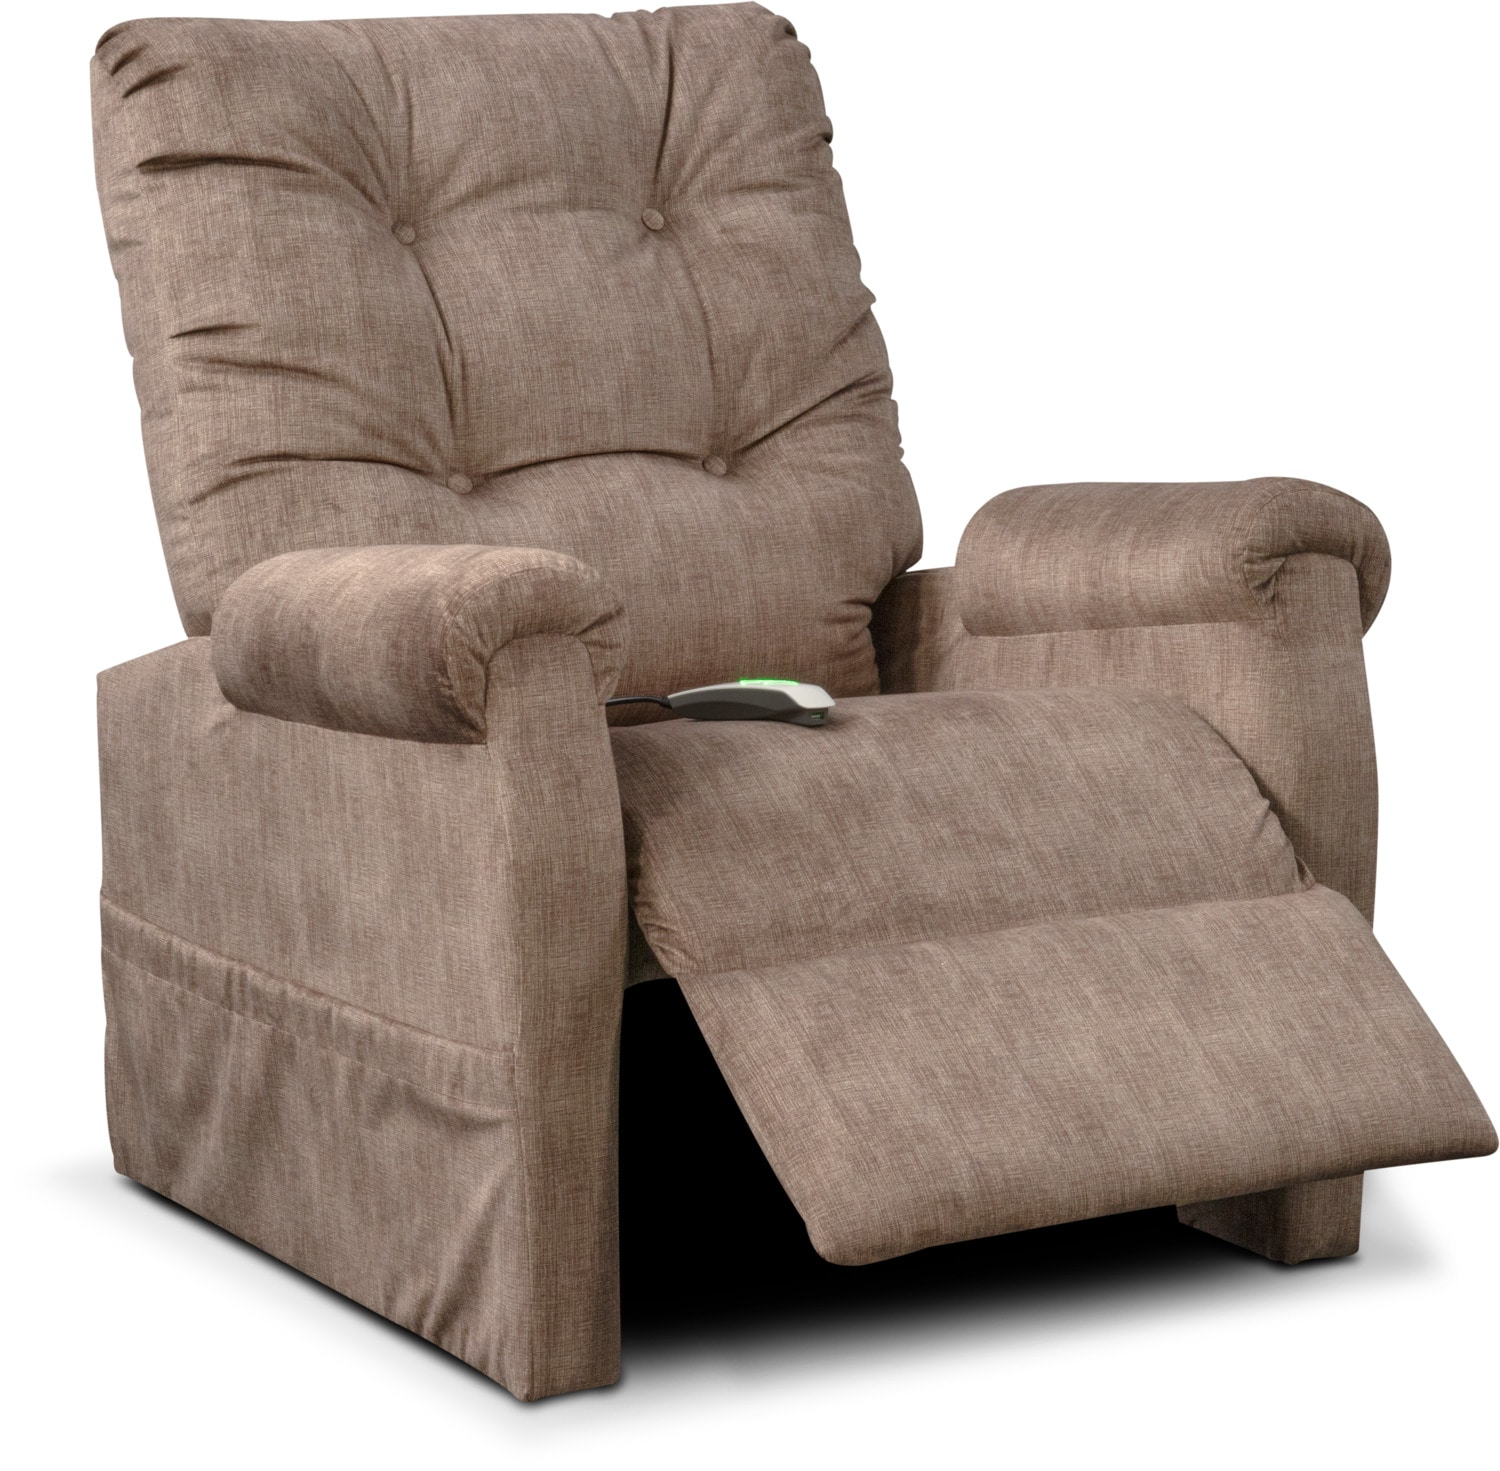 Brody Power Lift Recliner Putty Value City Furniture